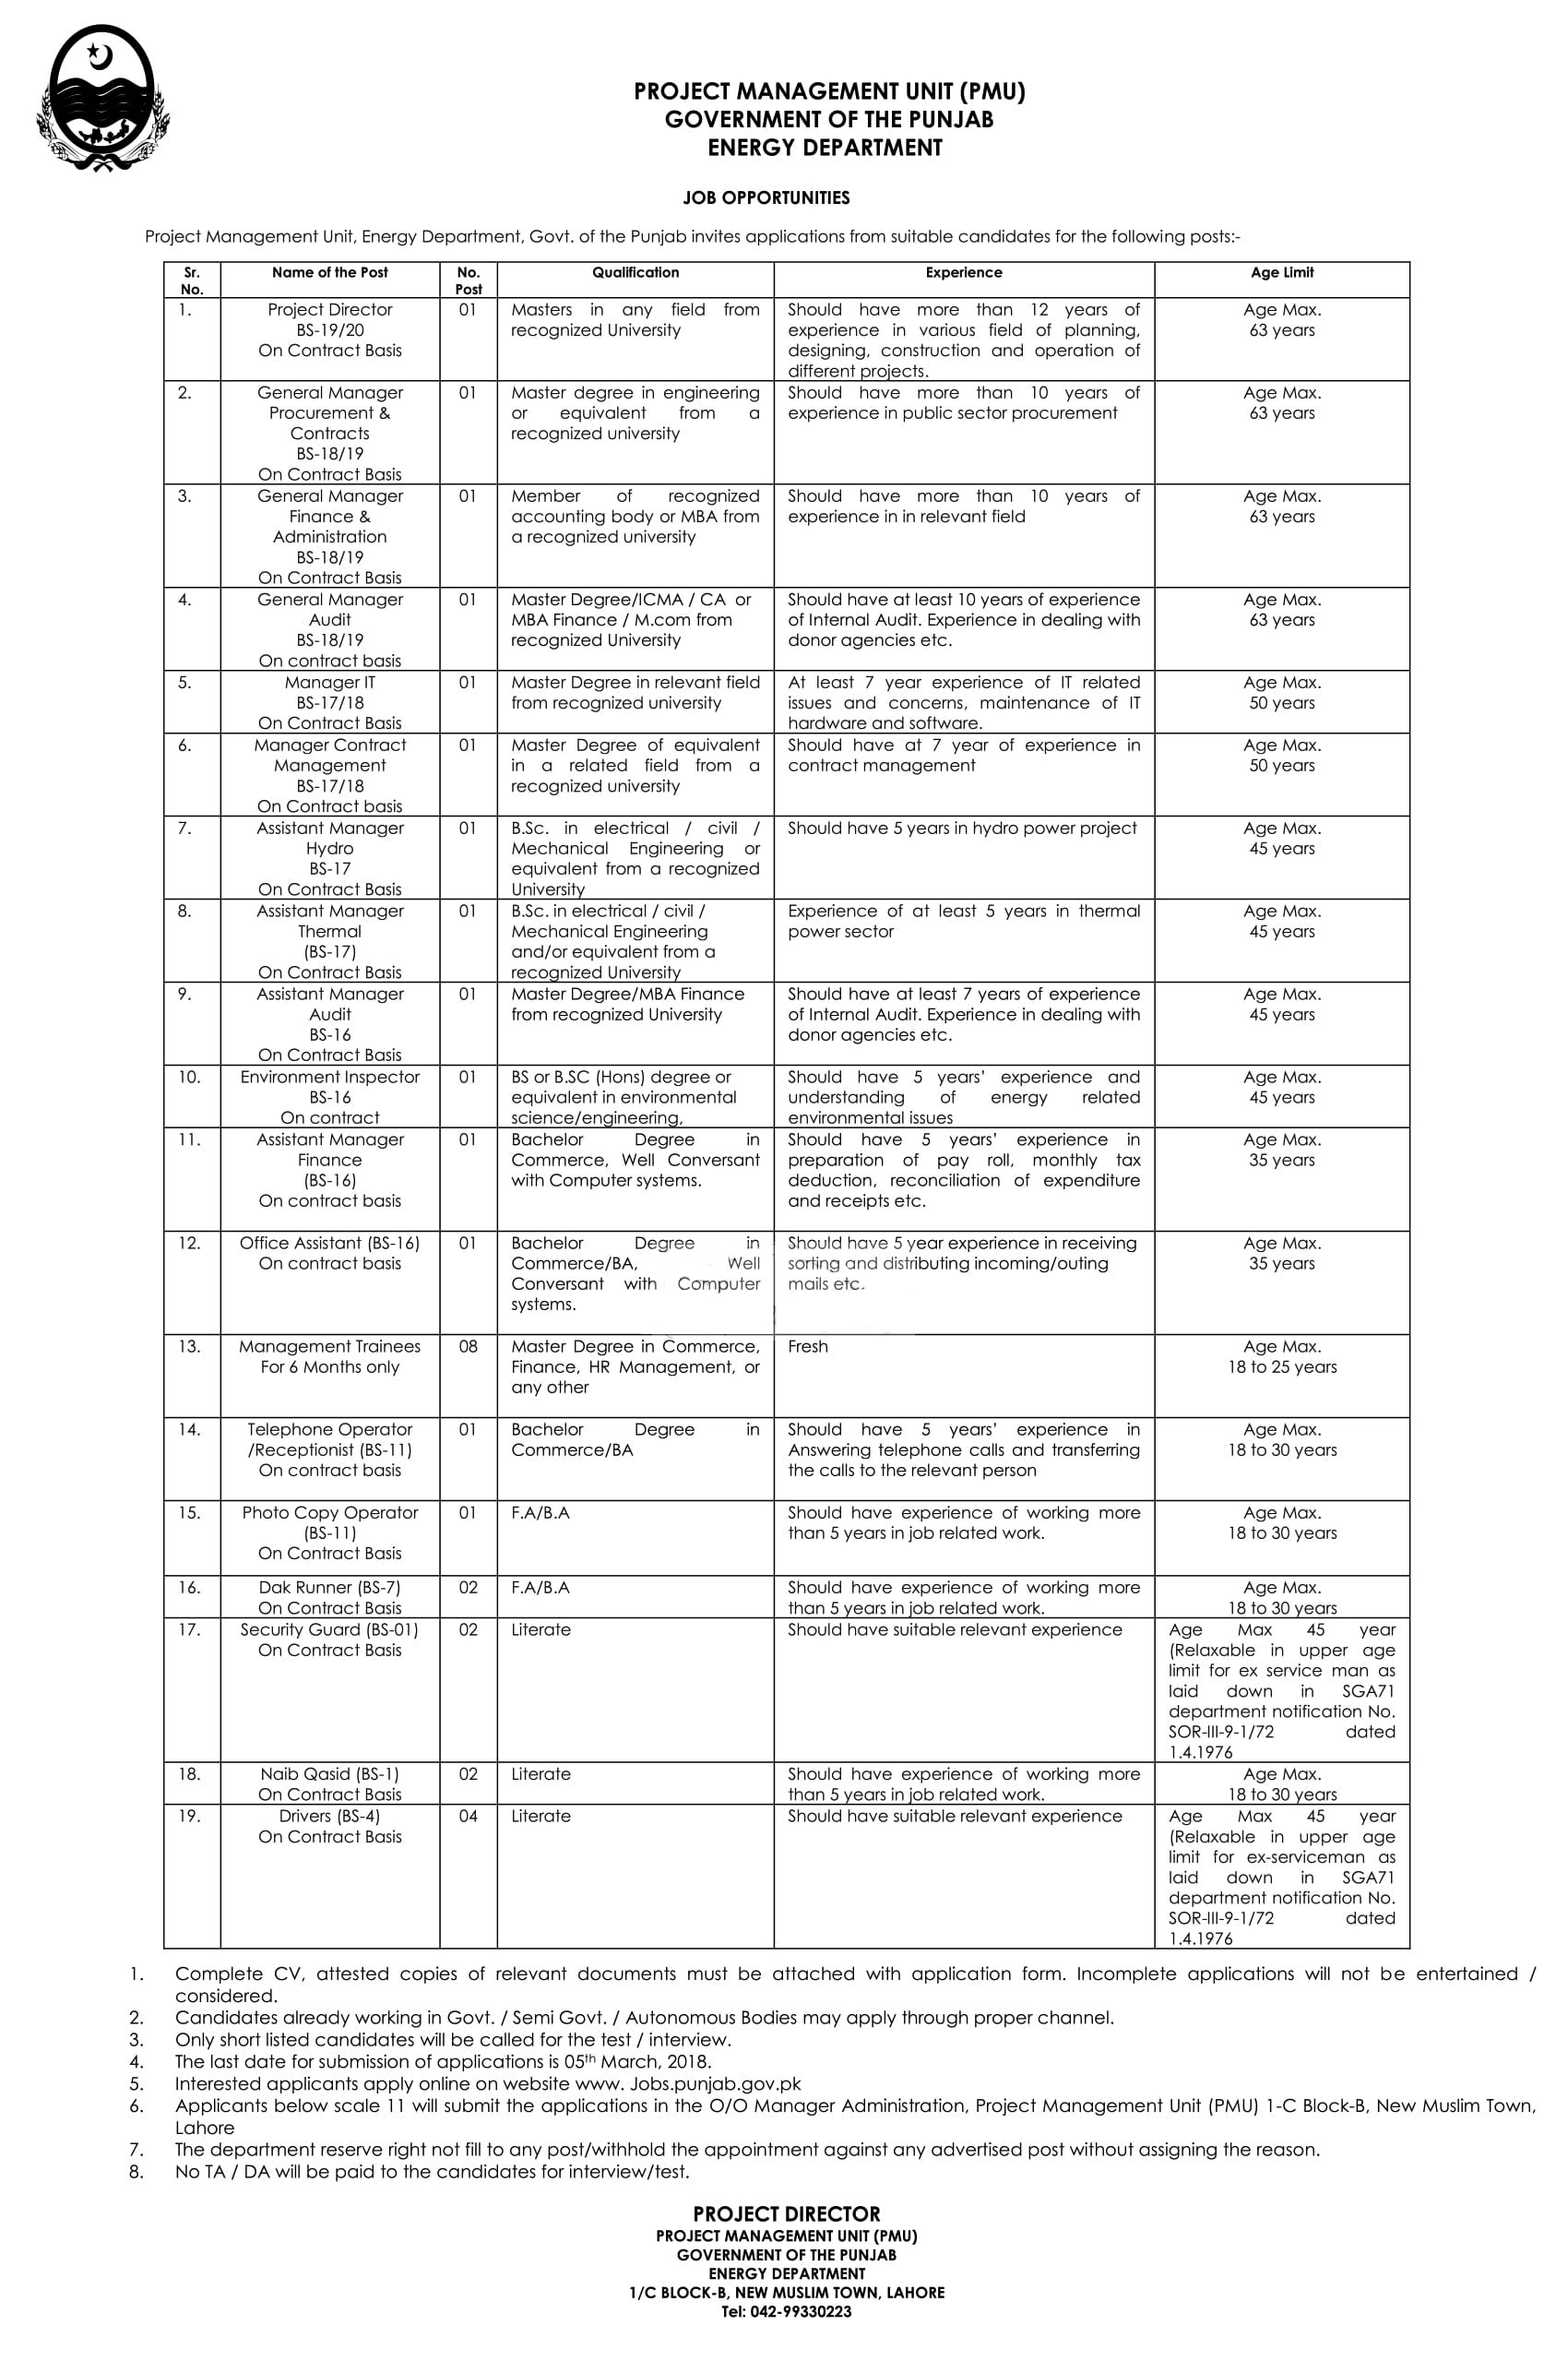 Energy Department Government of the Punjab 32 Jobs 23rd February 2018 Daily Jang Newspaper